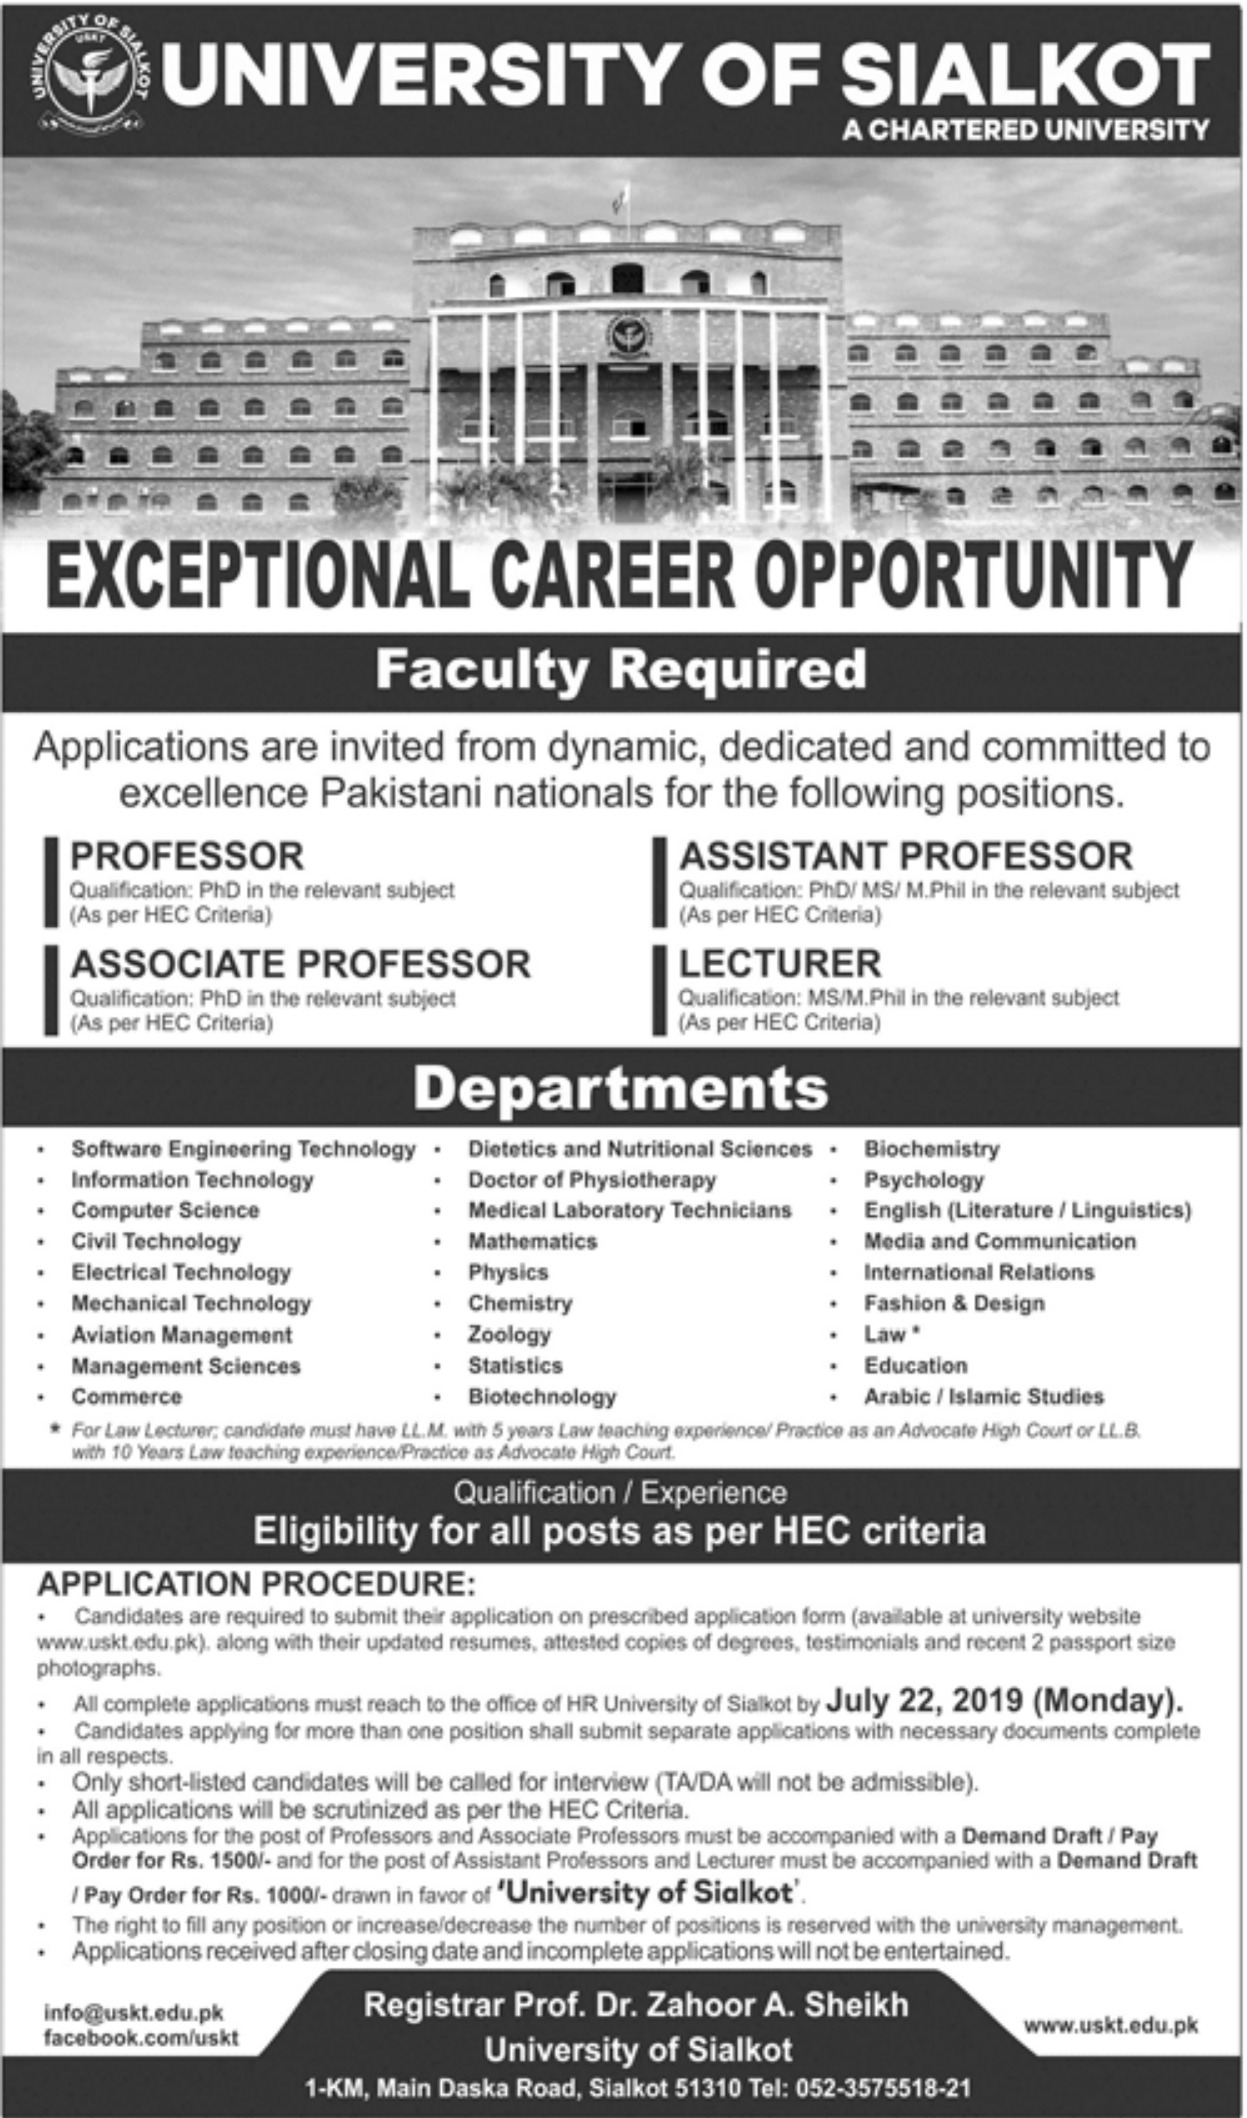 University of Sialkot Jobs 2019 Faculty Required